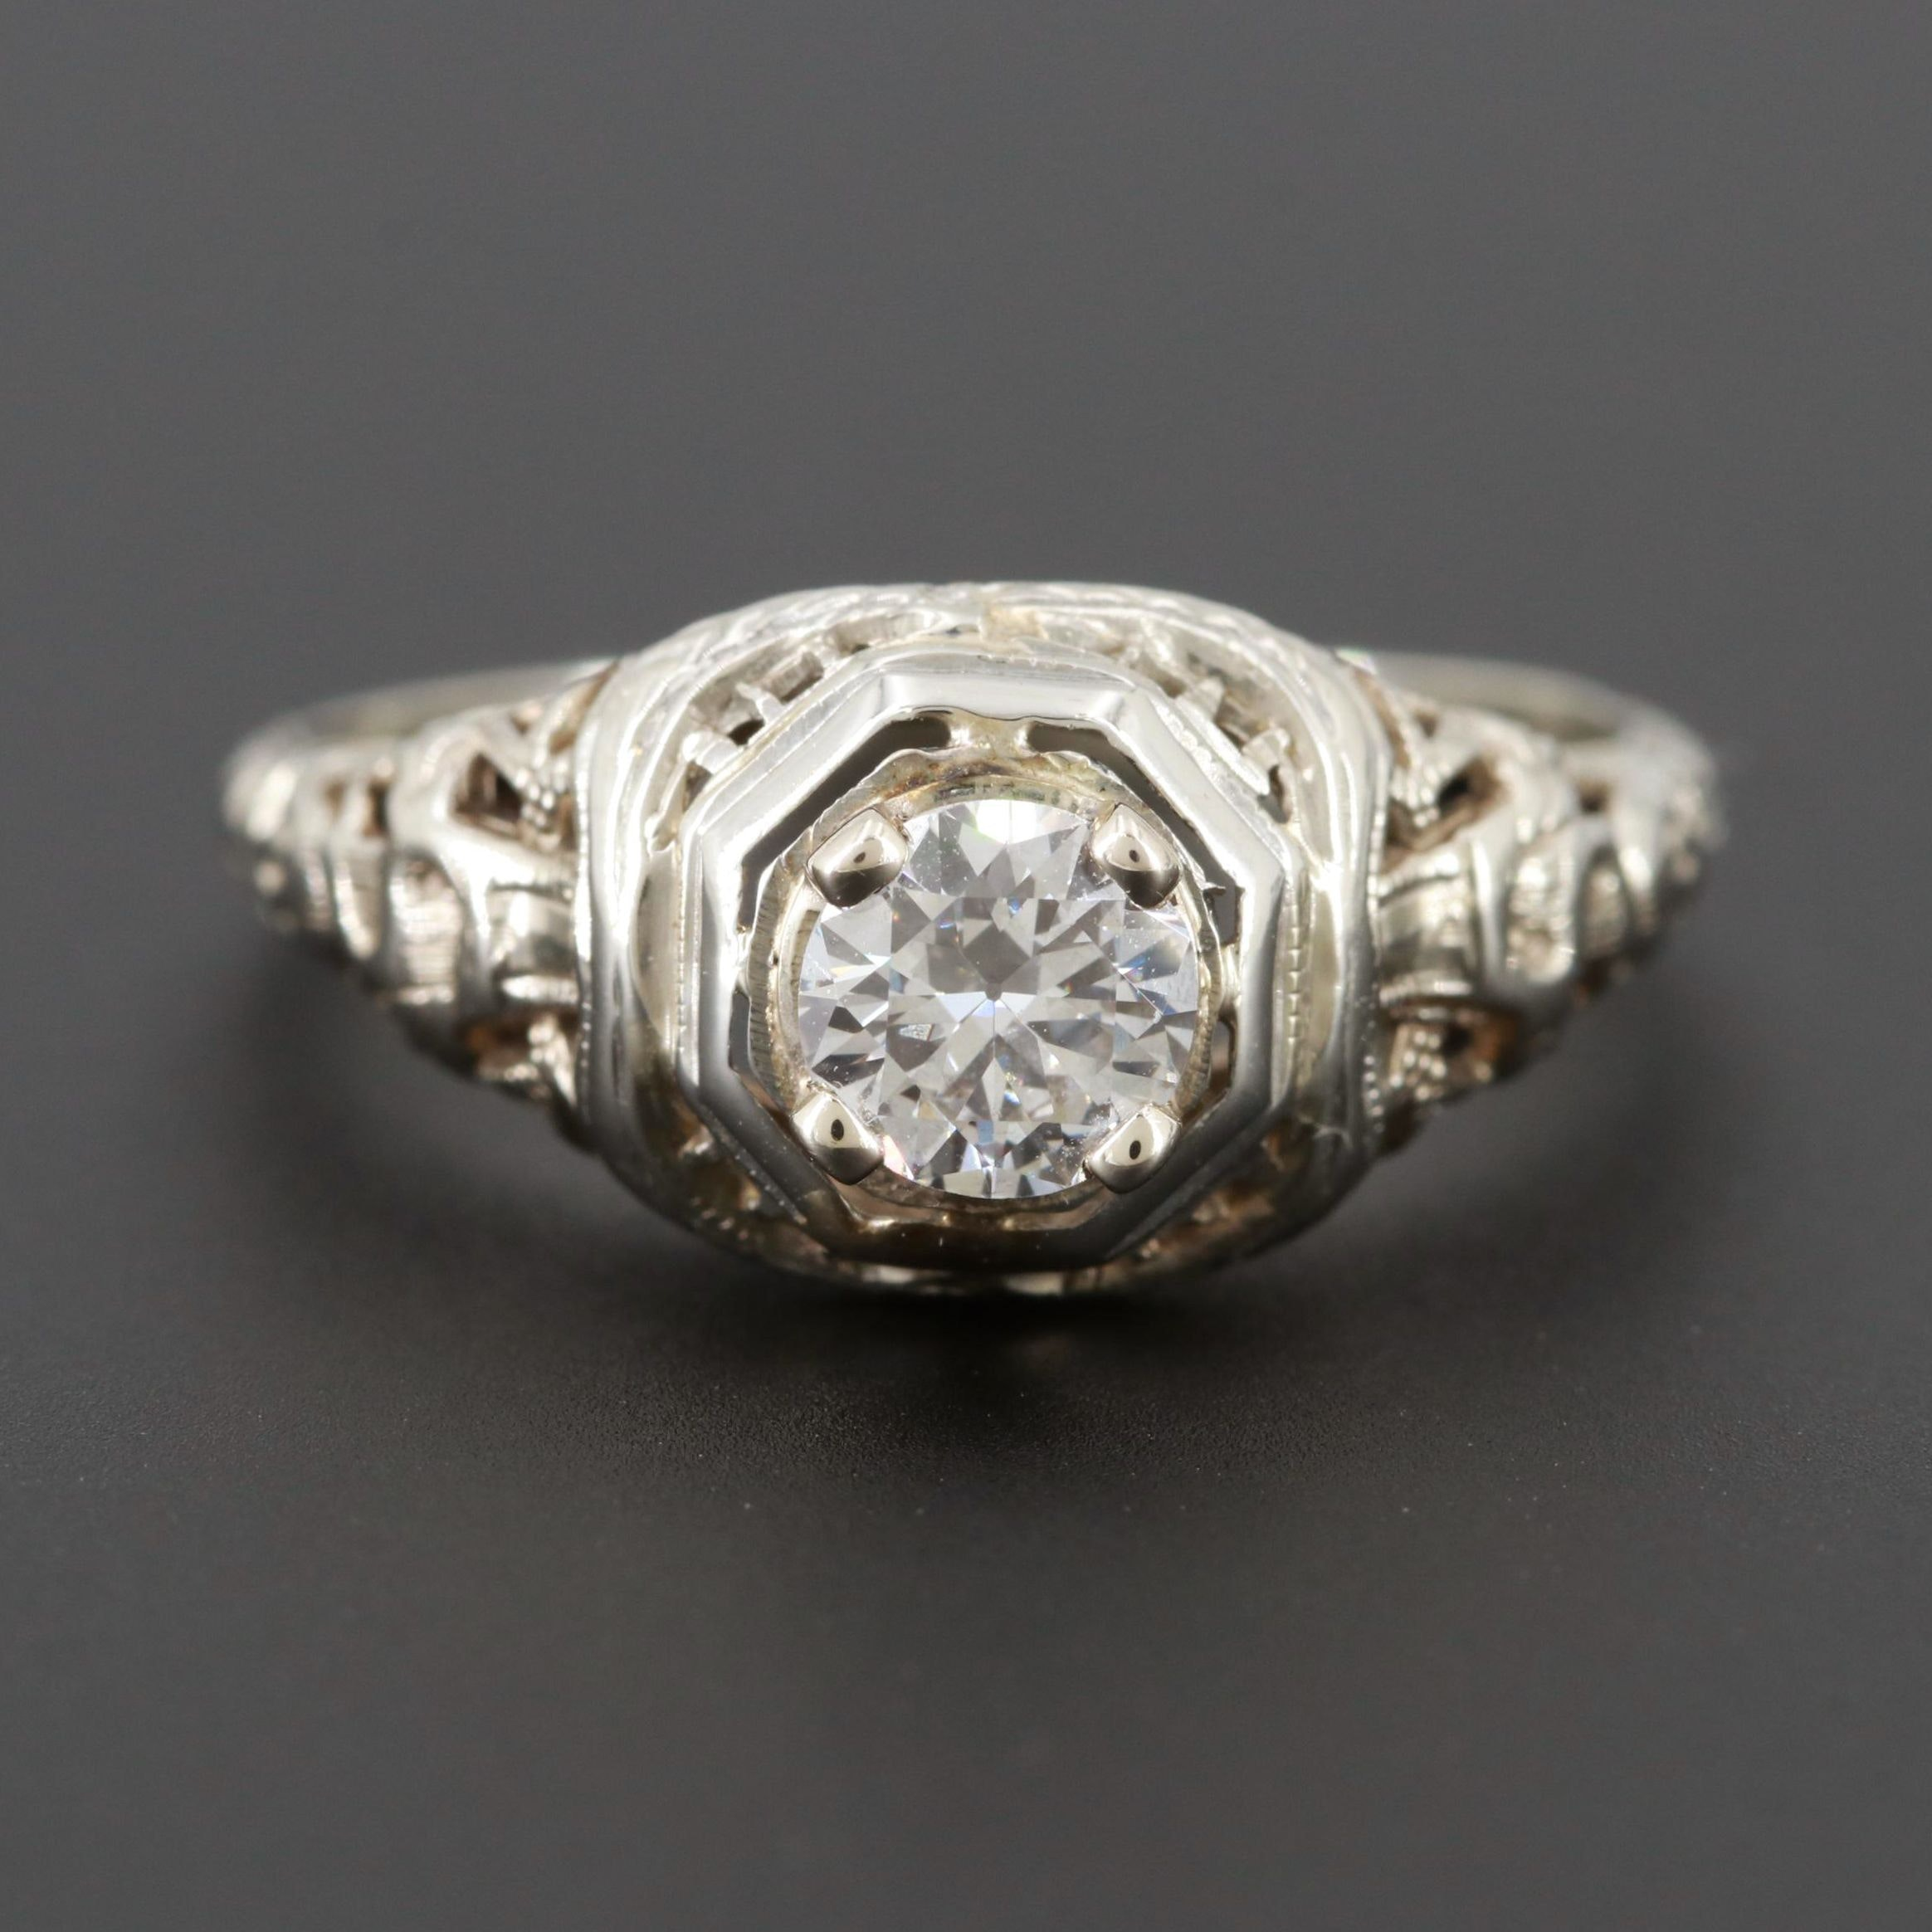 Late Edwardian 18K White Gold Diamond Openwork Ring